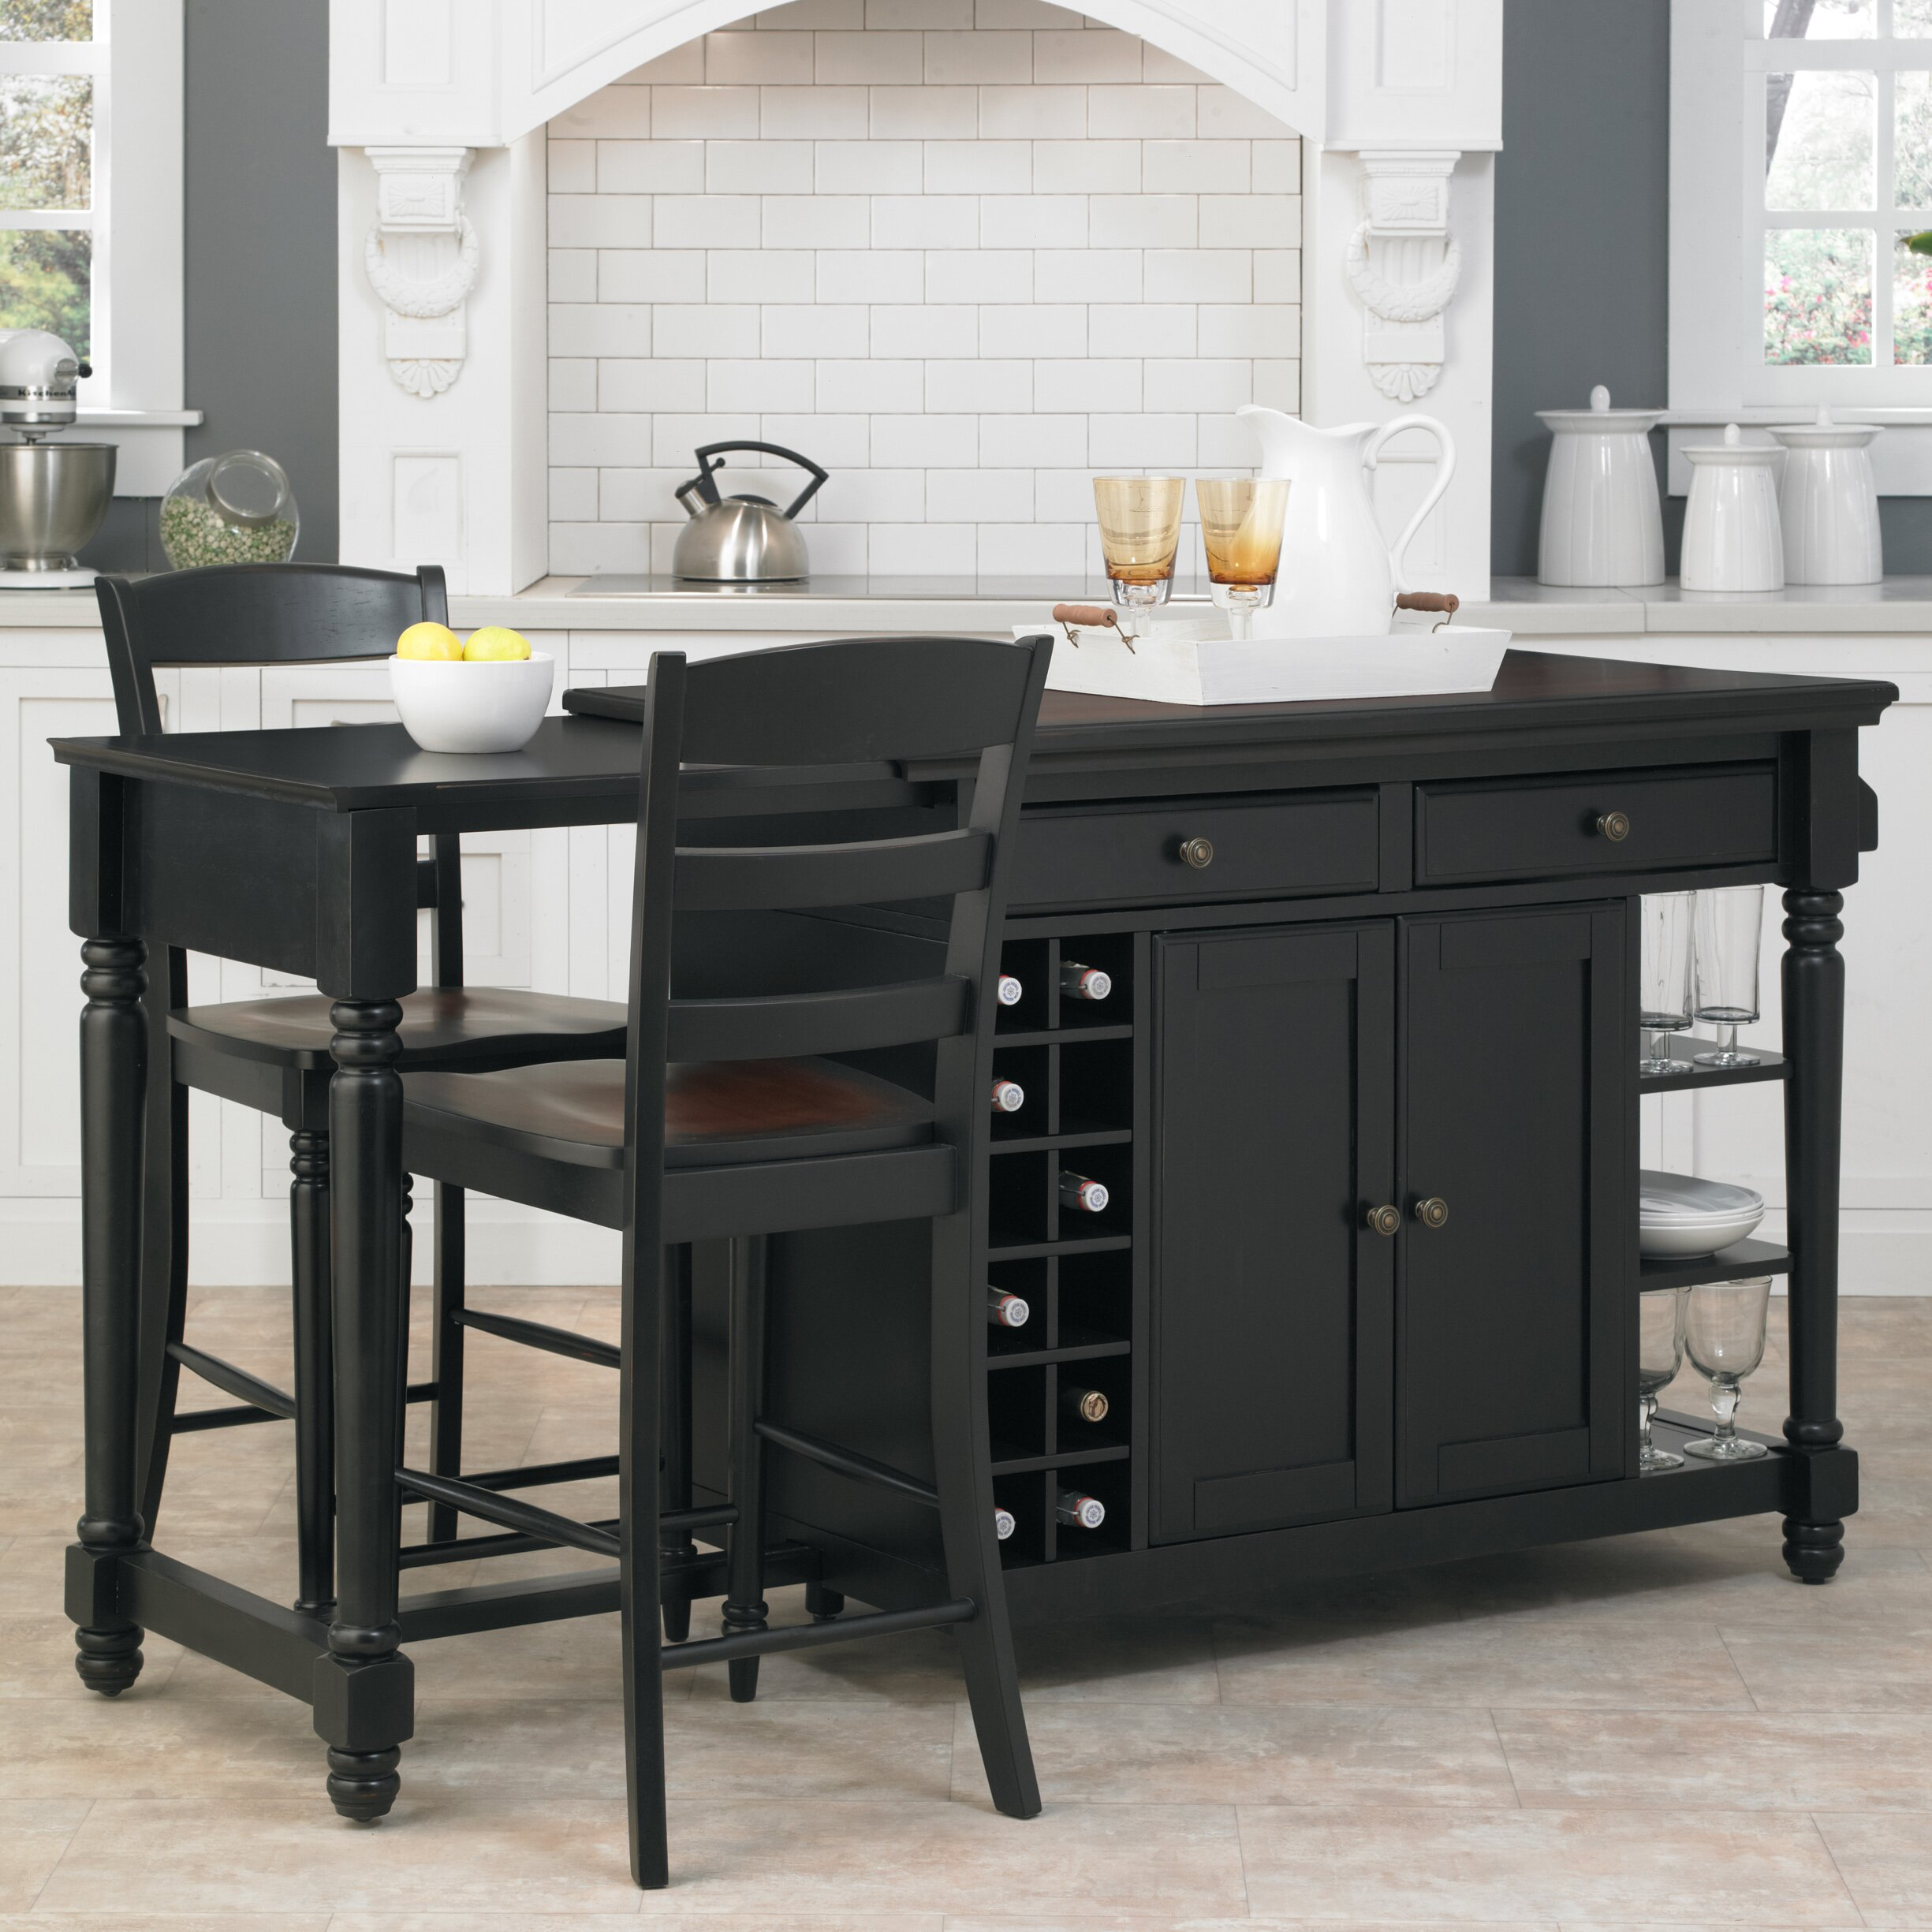 darby home co cleanhill 3 kitchen island set